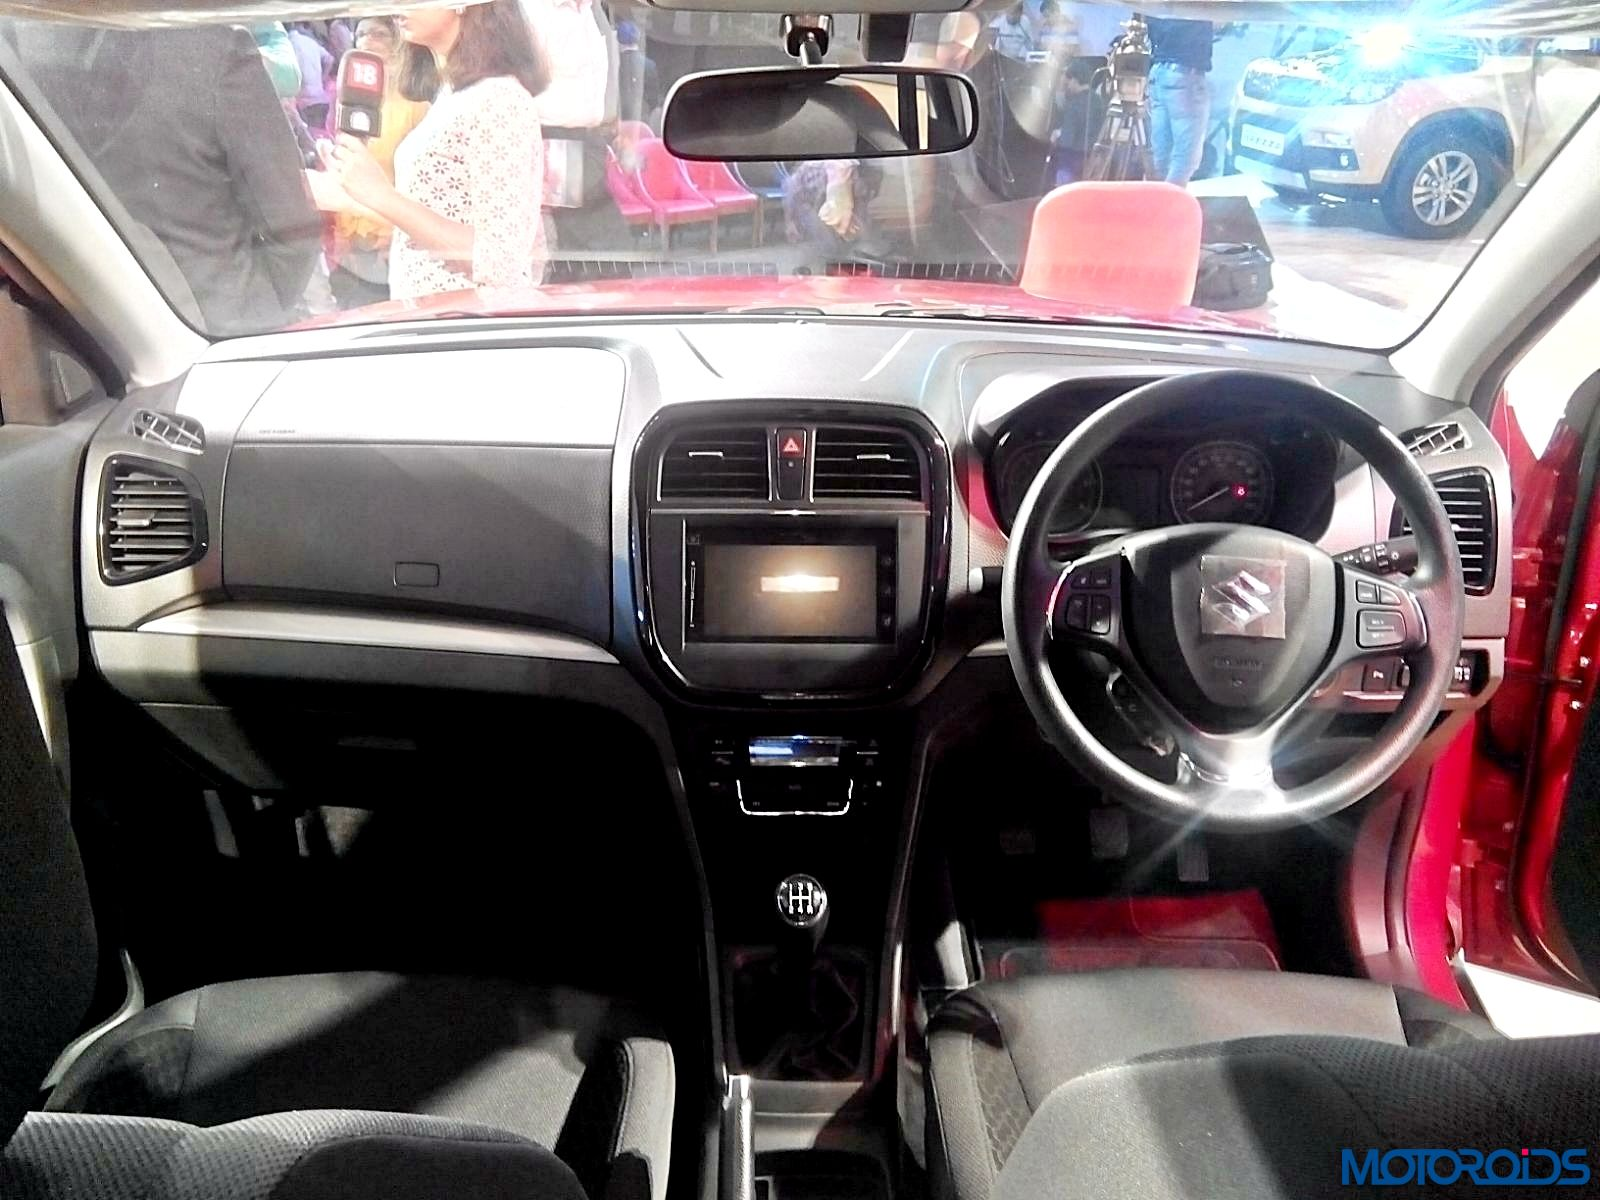 maruti vitara brezza india launch details images and prices live from the event motoroids. Black Bedroom Furniture Sets. Home Design Ideas